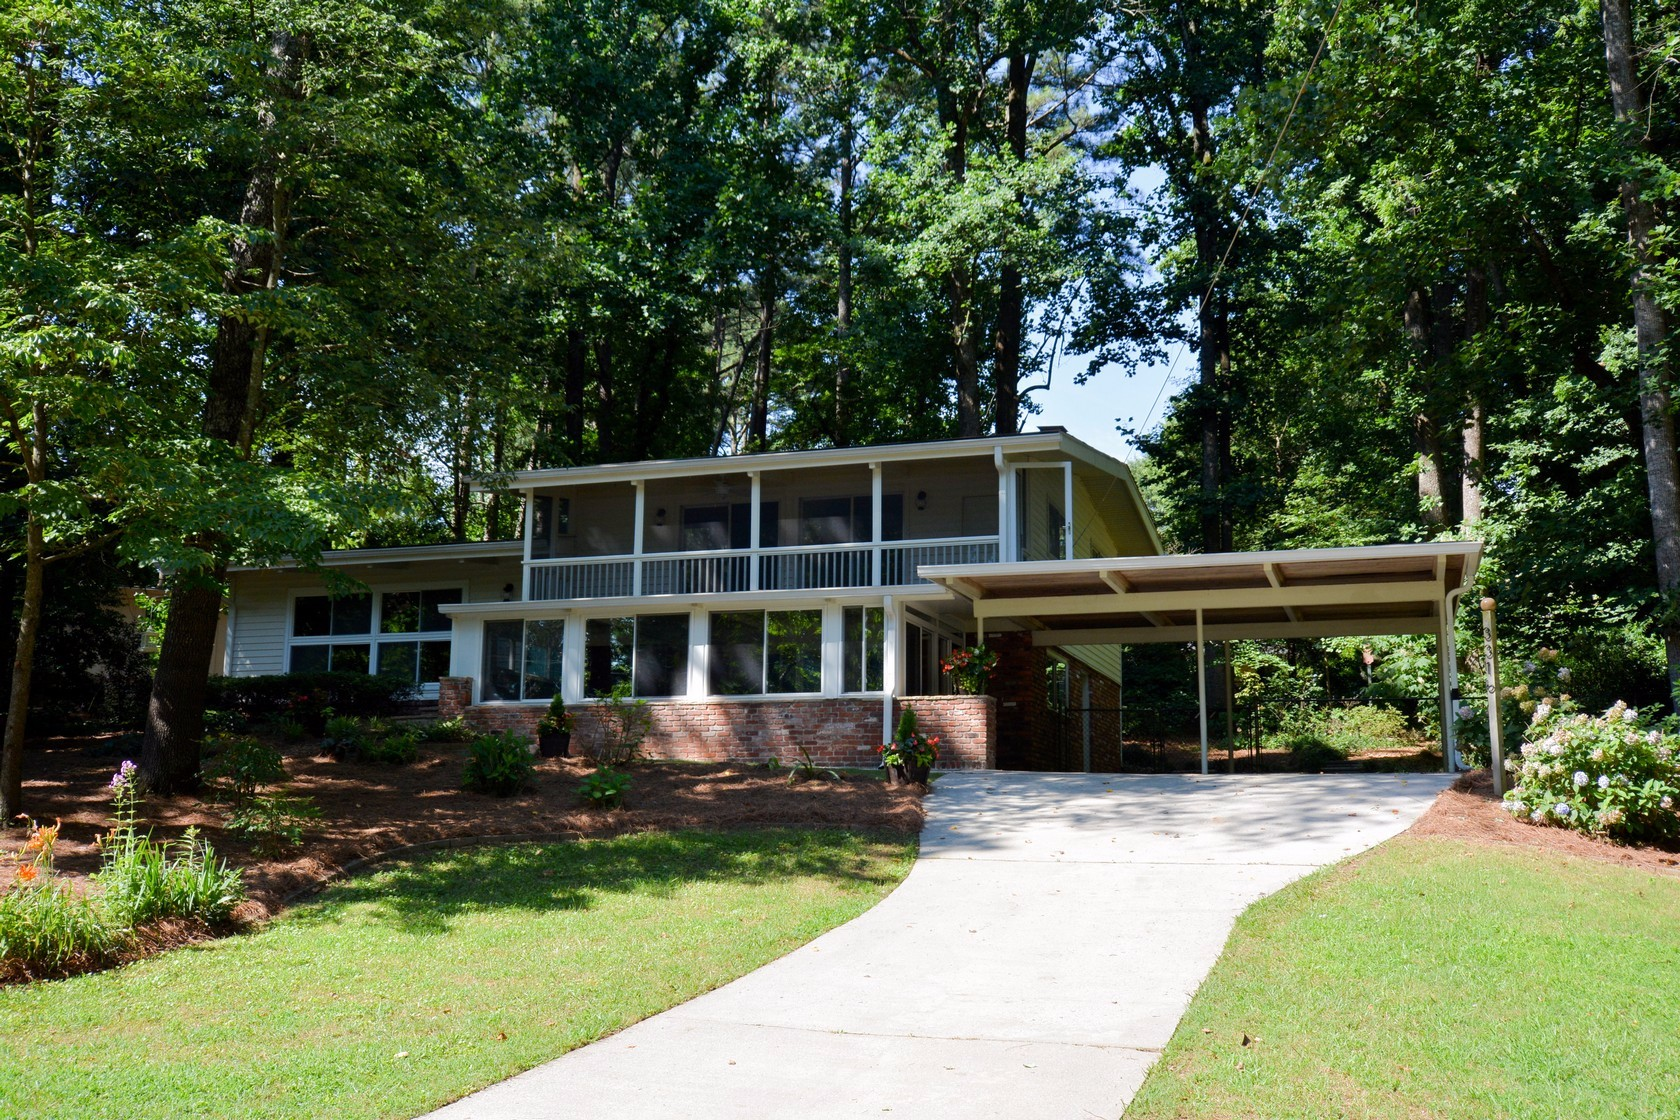 Doraville Home For Sale on Lynnray Dr.